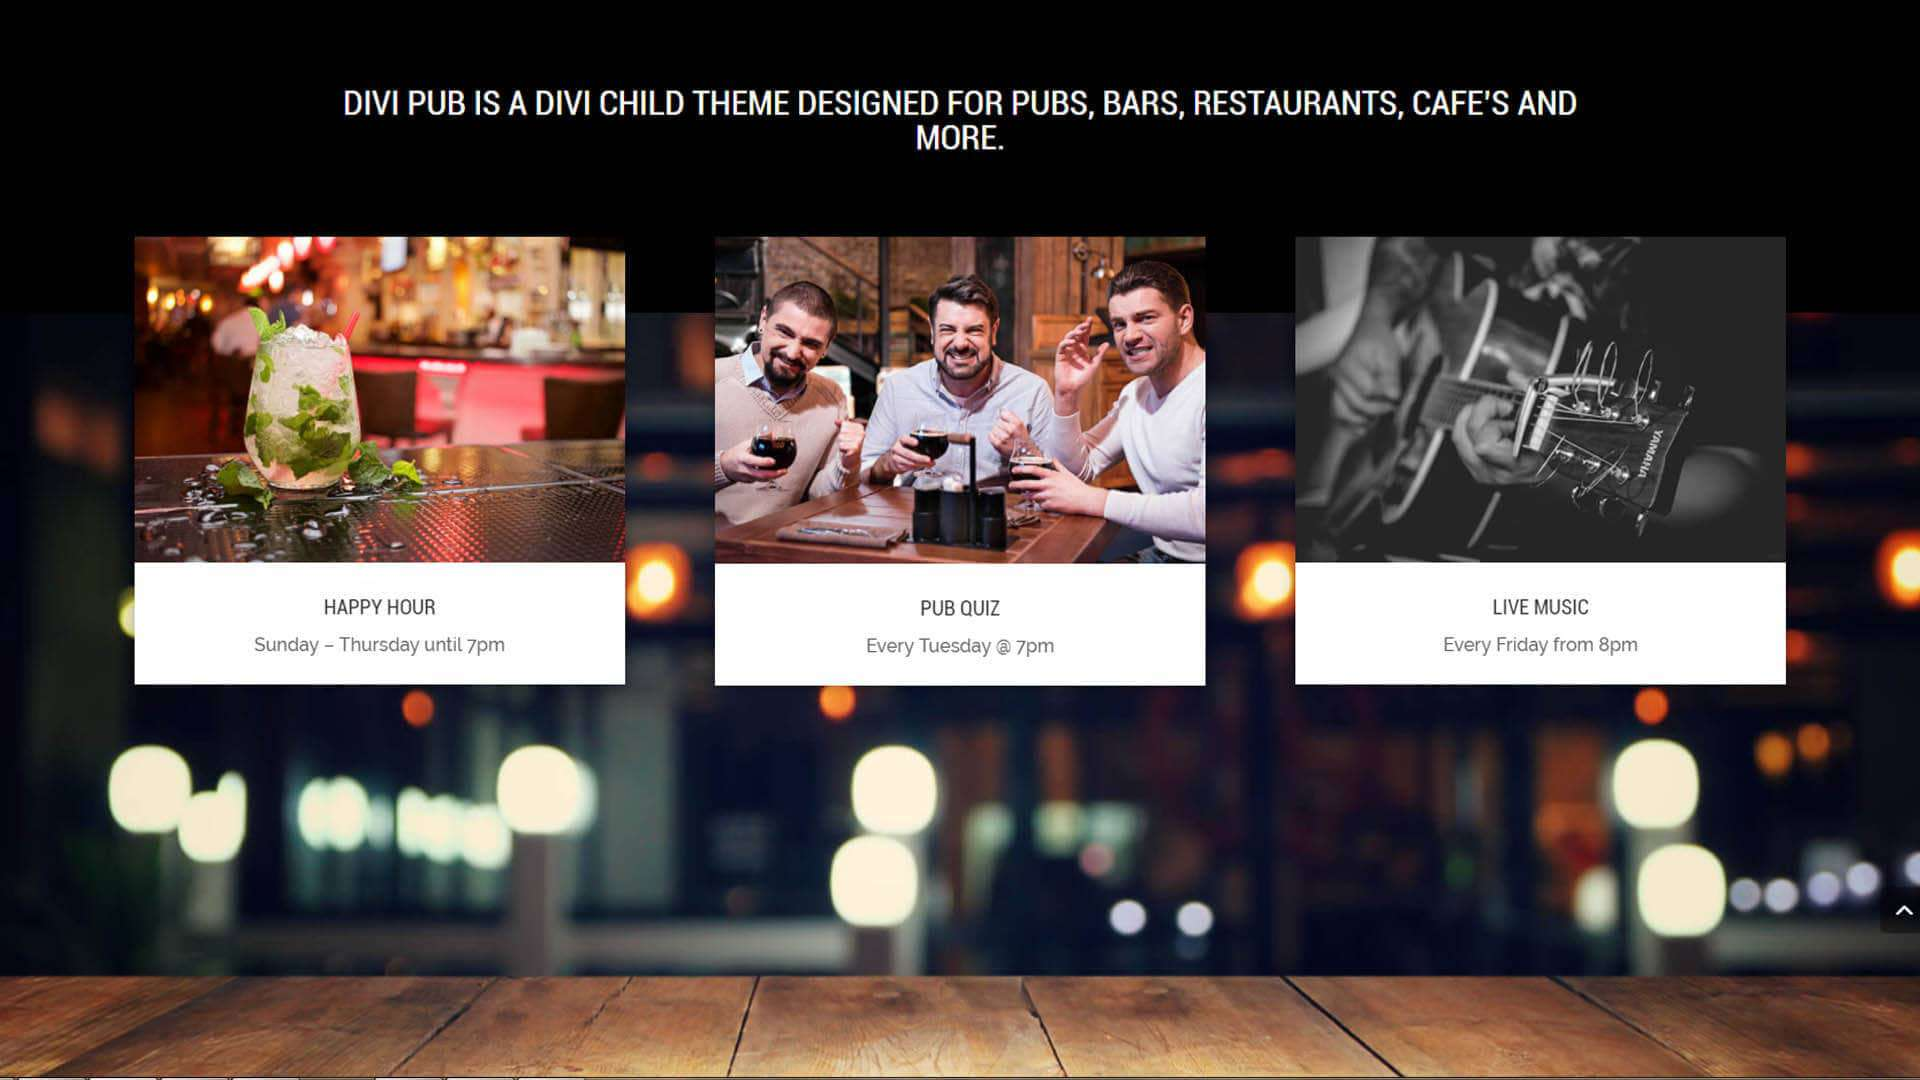 divi-pub-child-theme-gallery-2